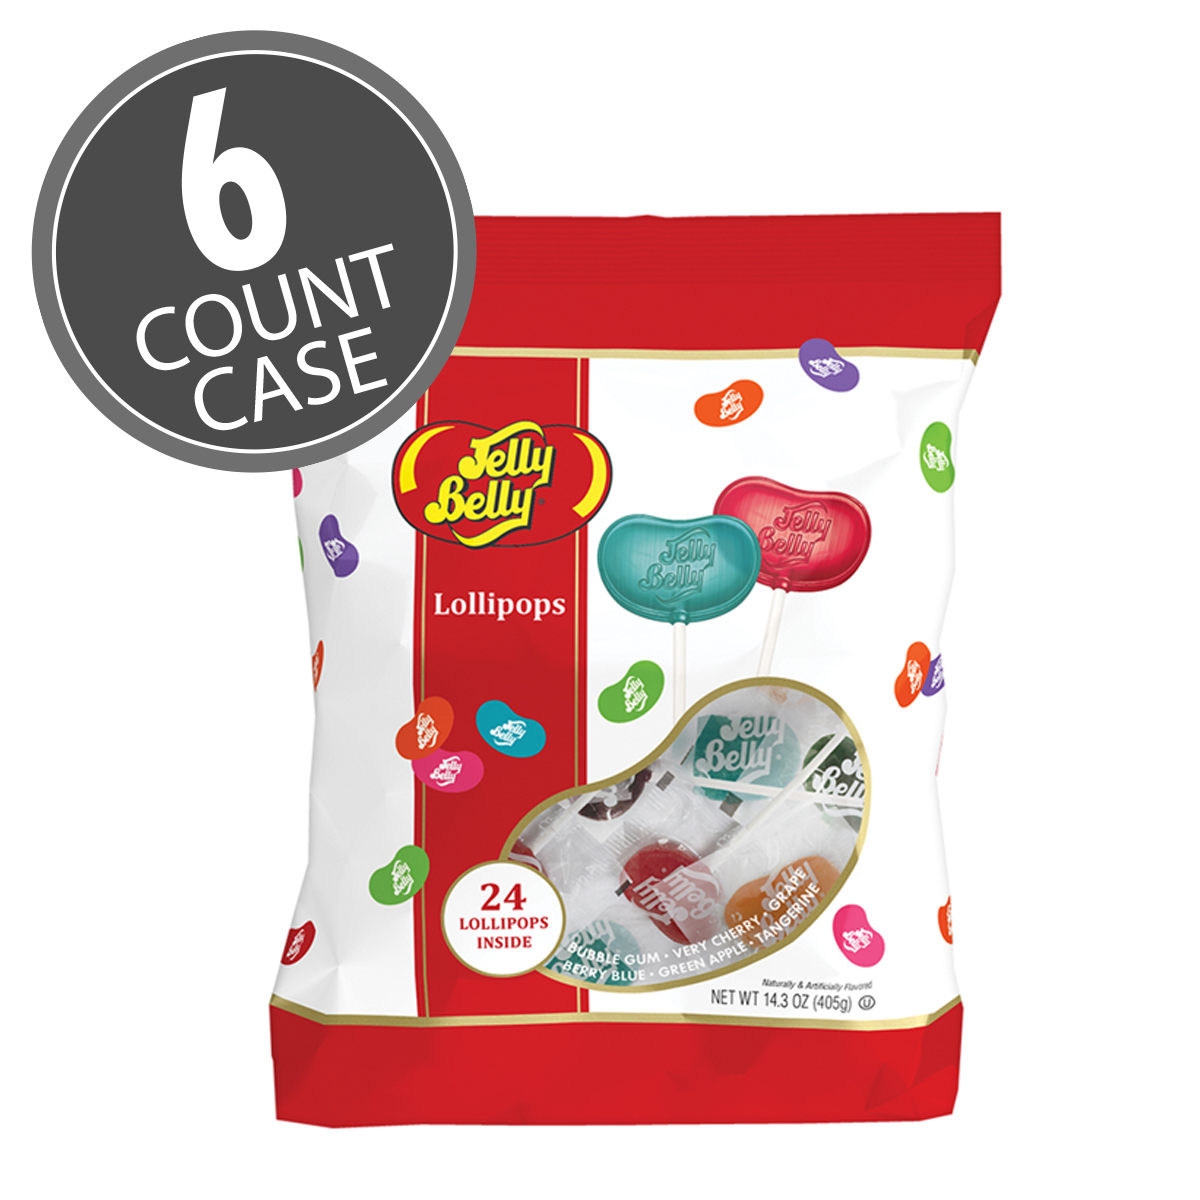 Jelly Belly Lollipop Pouch Bag, 6-Count Case